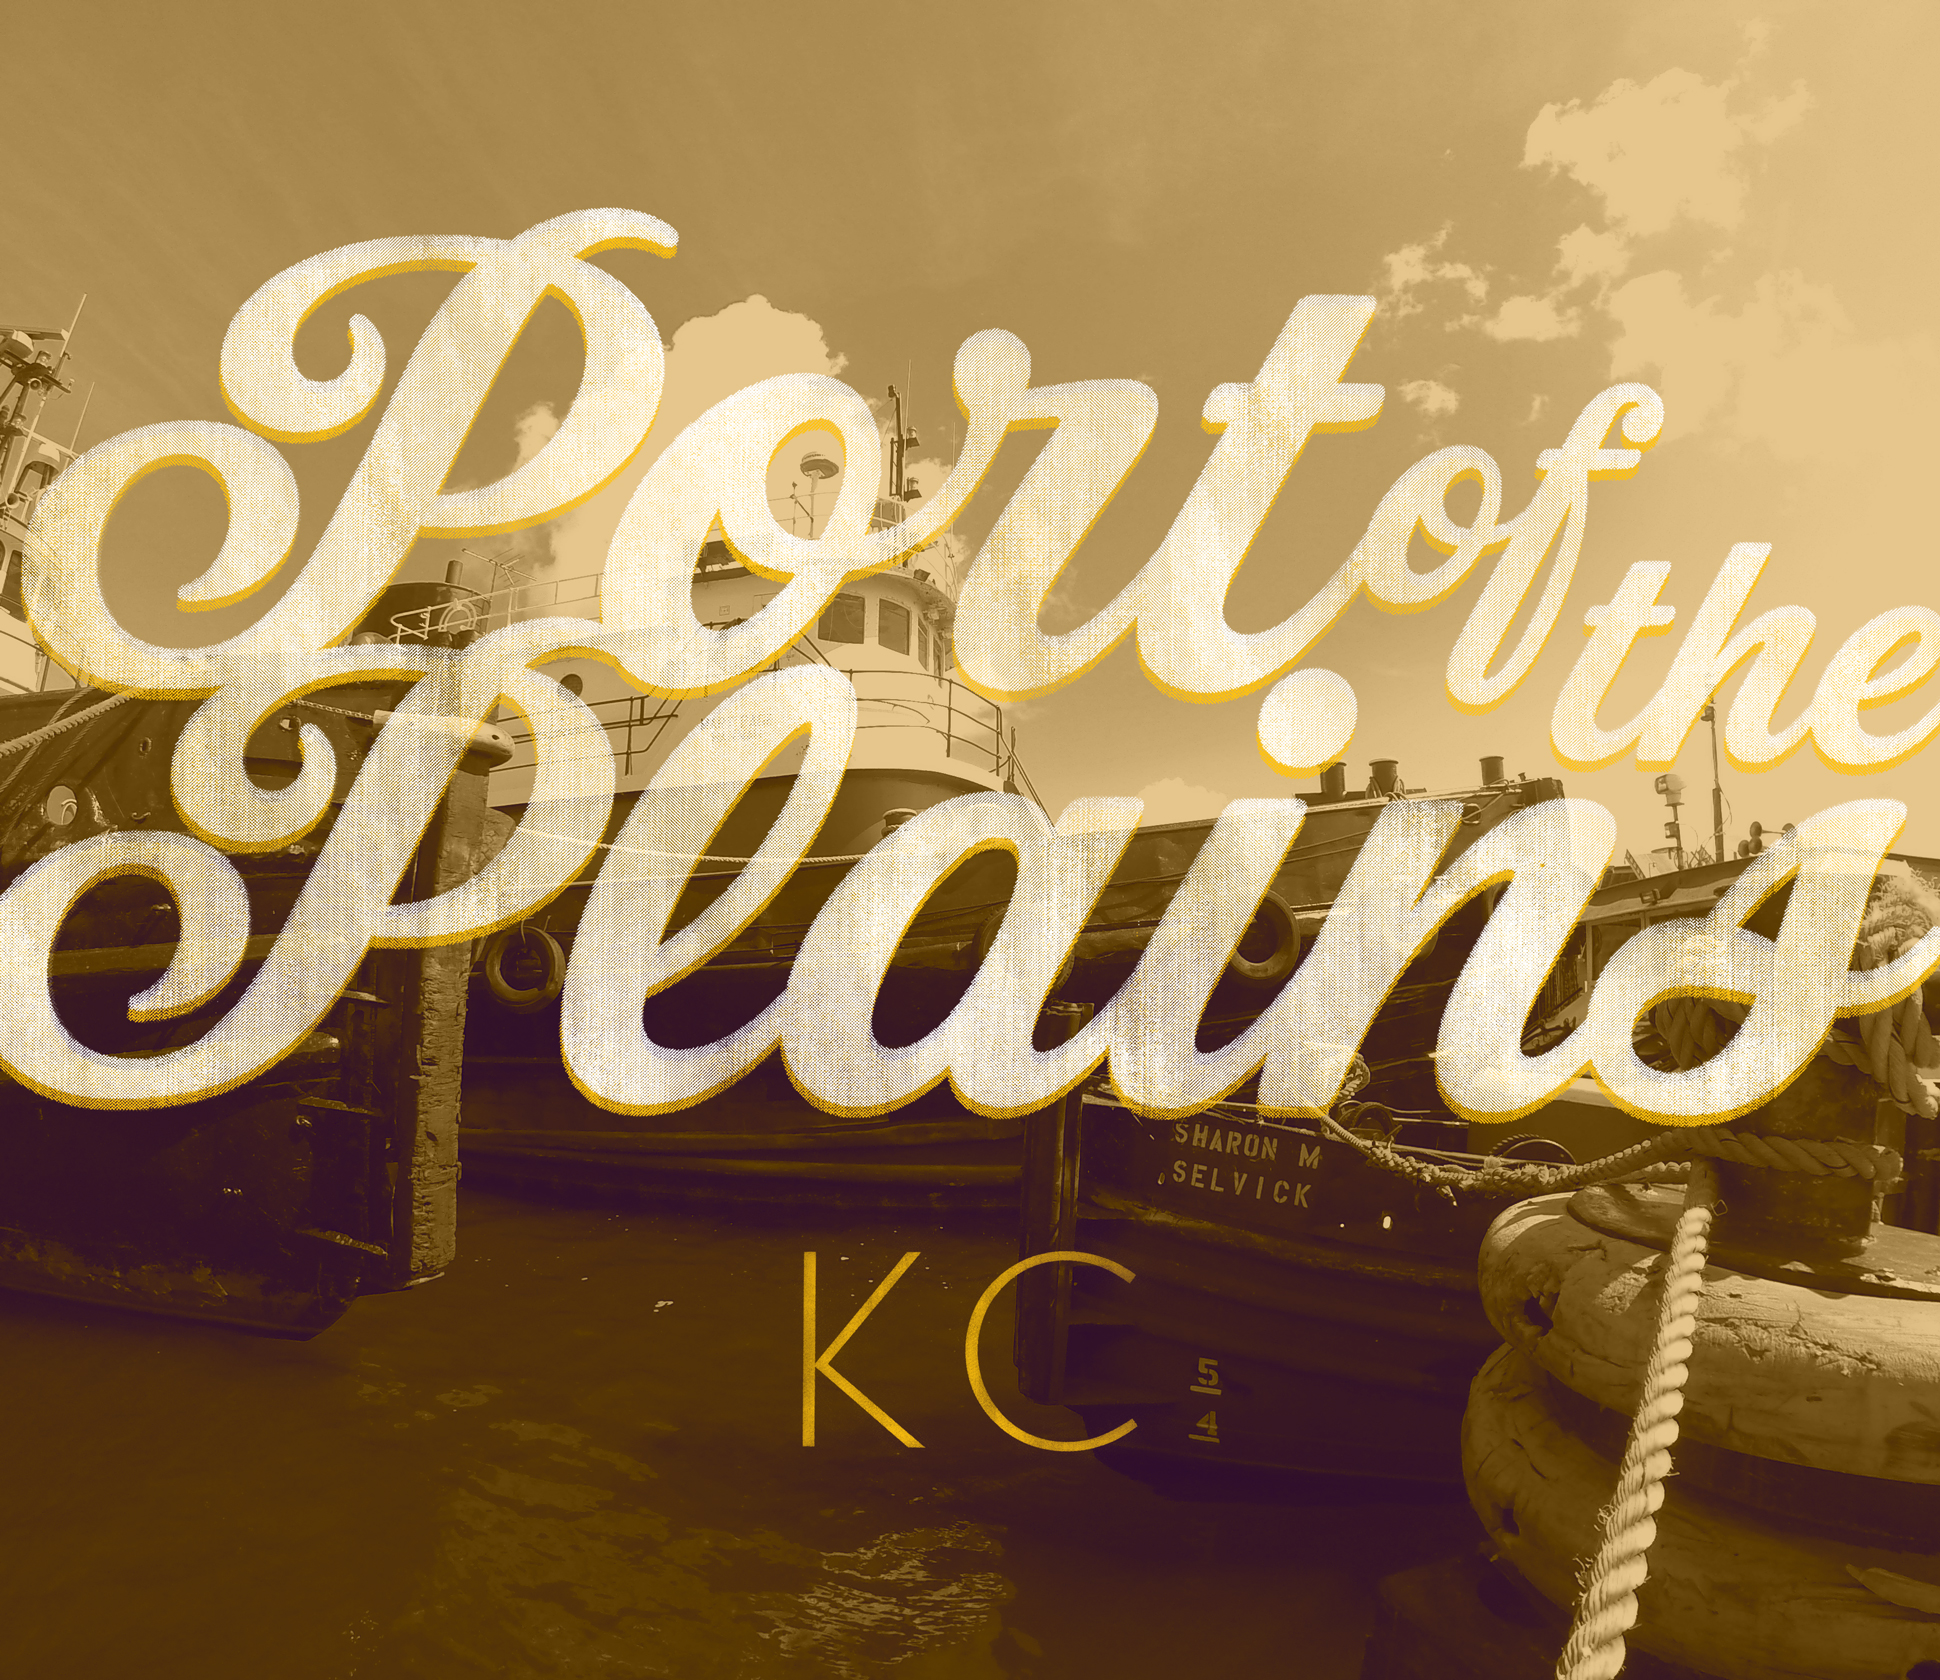 Ocean-and-Sea_Daydream-29_Port-of-the-Plains.jpg